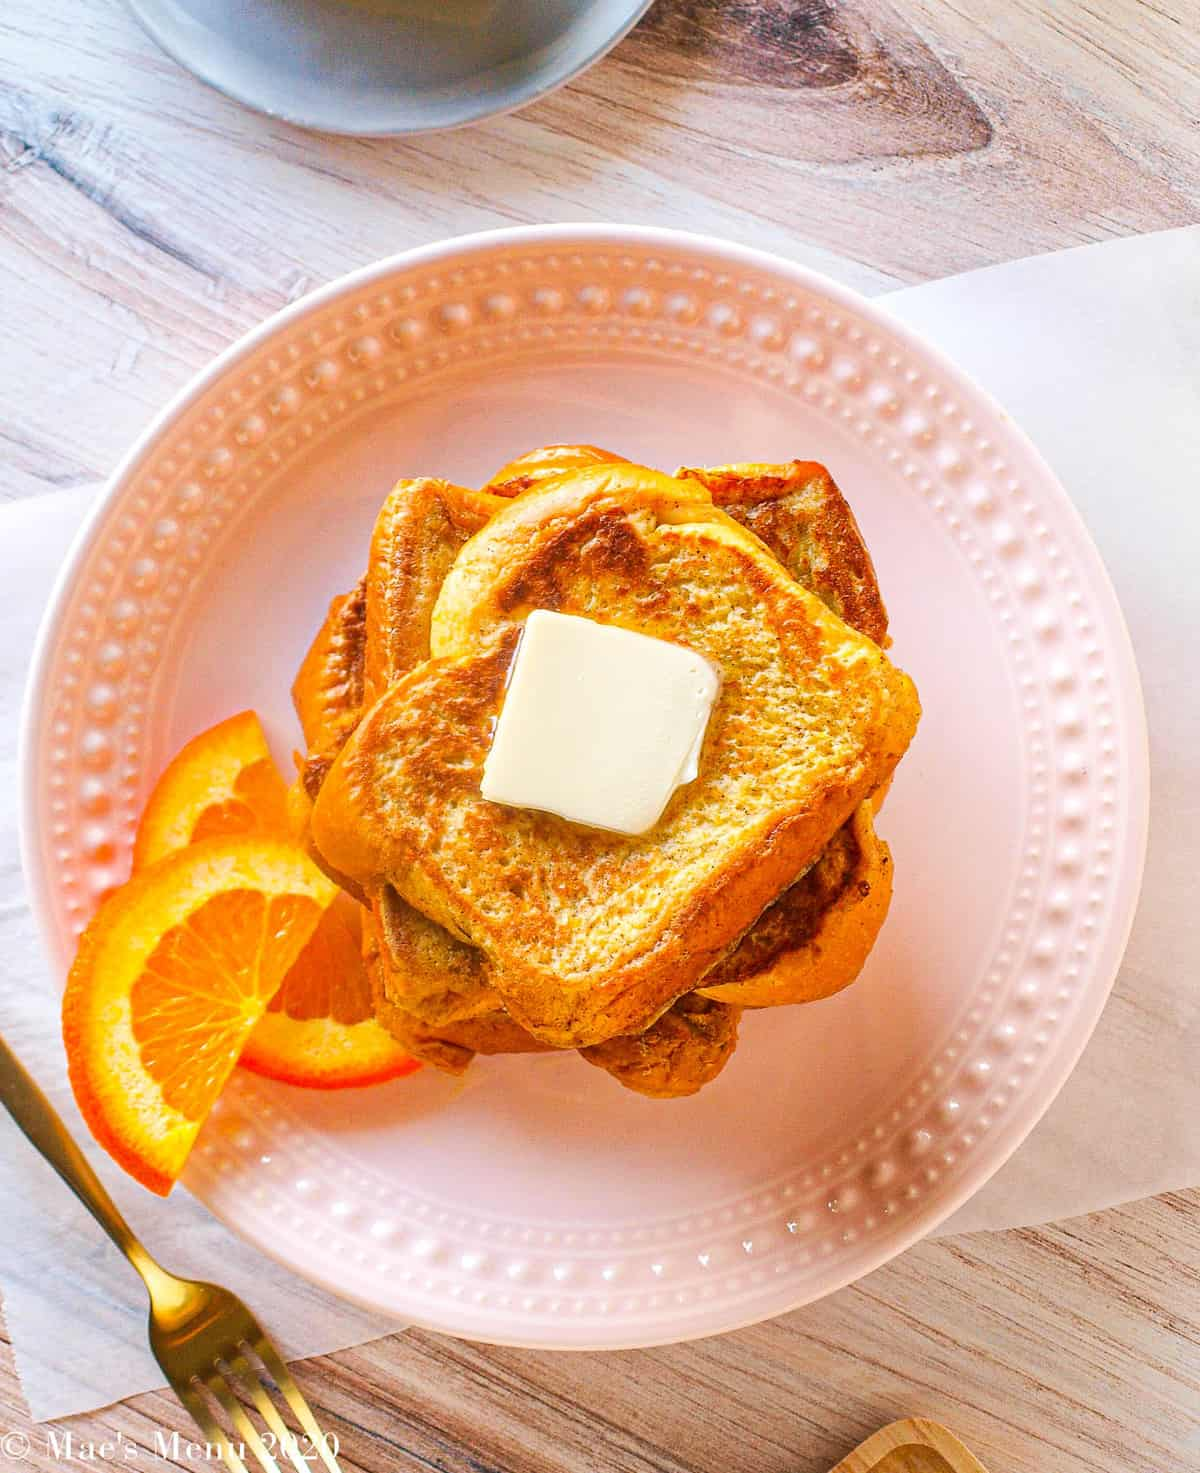 An overhead shot of a large stack of brioche french toast with a square of butter on top and orange slices on the side